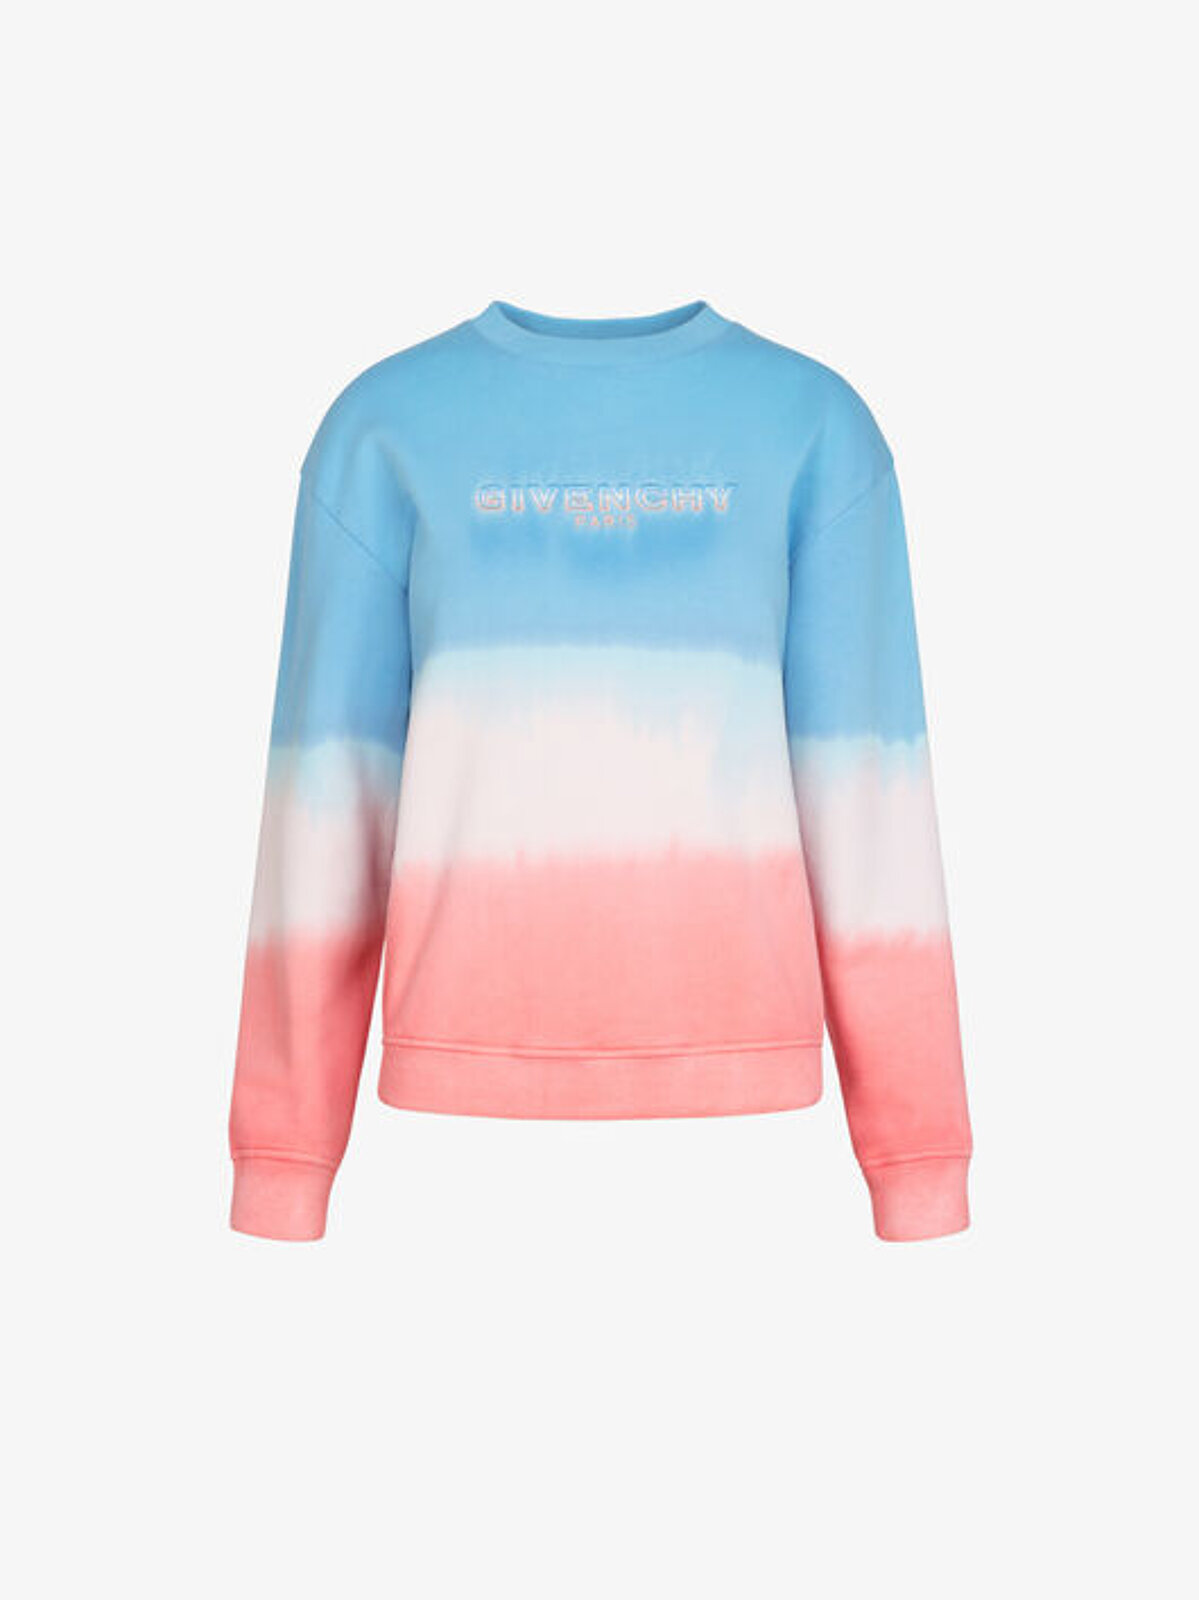 Givenchy Dégradé sweatshirt - Givenchy